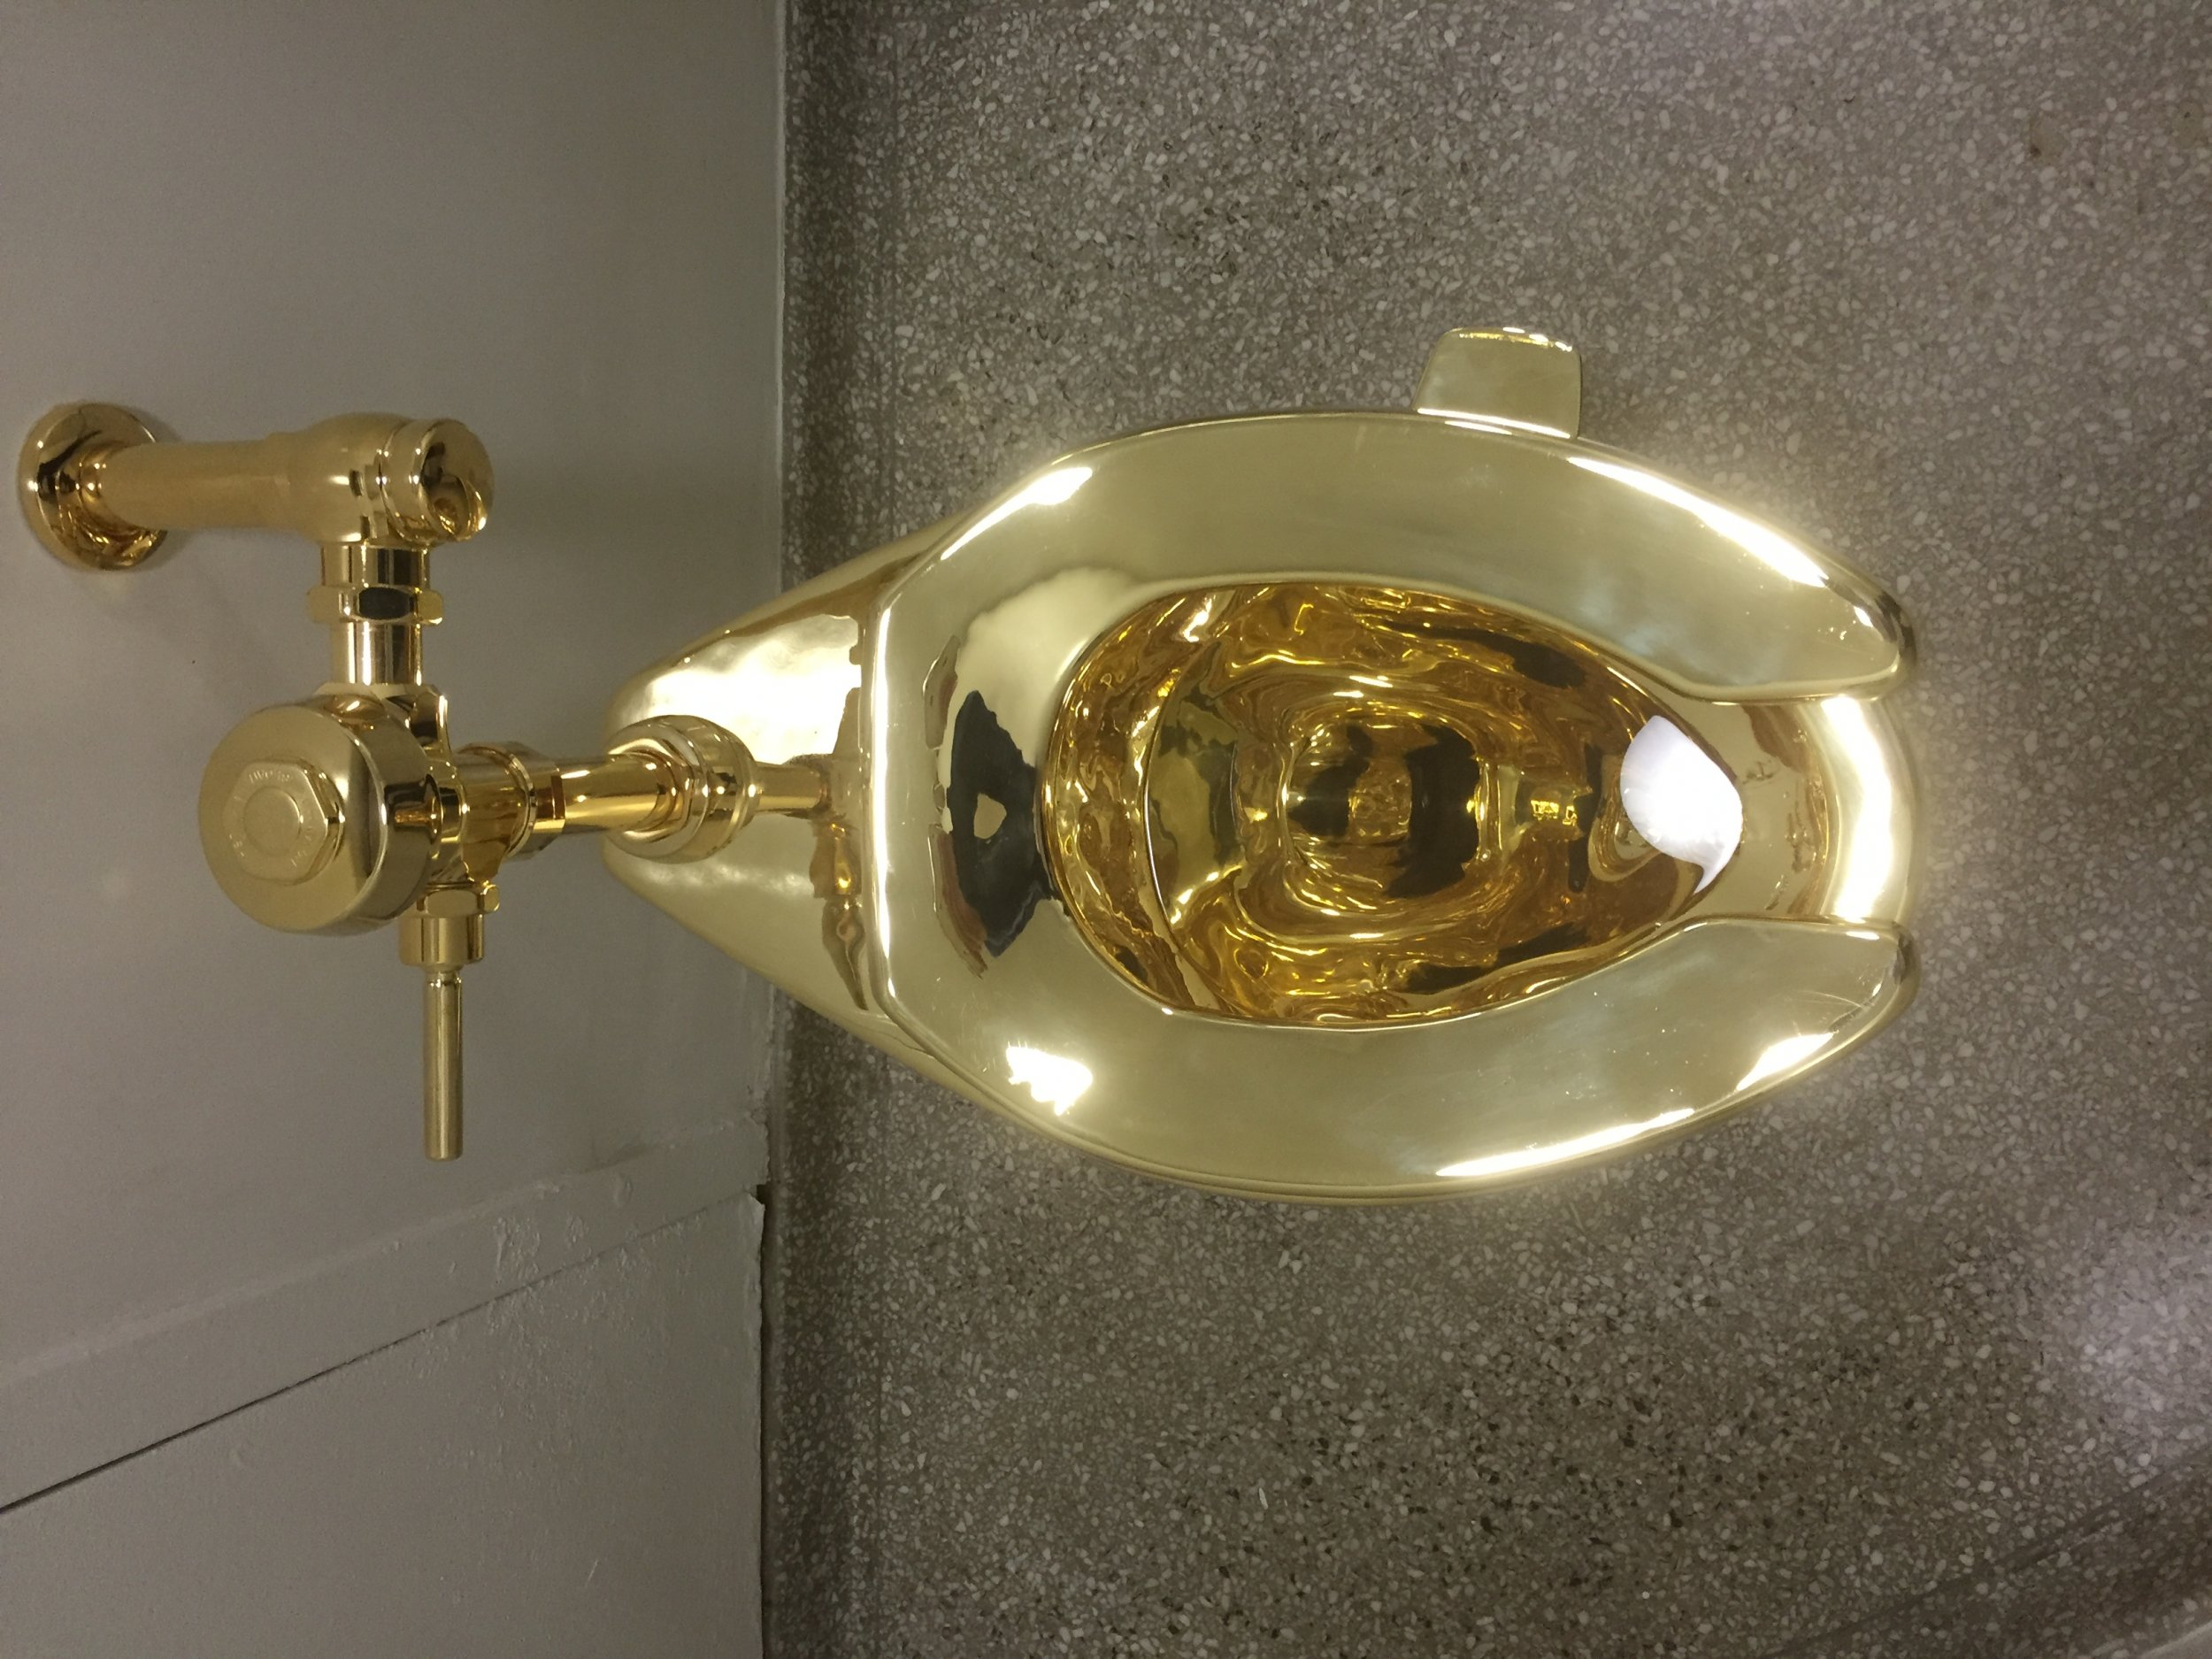 Sensational Donald And Melania Trump Offered A Used Gold Toilet After Inzonedesignstudio Interior Chair Design Inzonedesignstudiocom